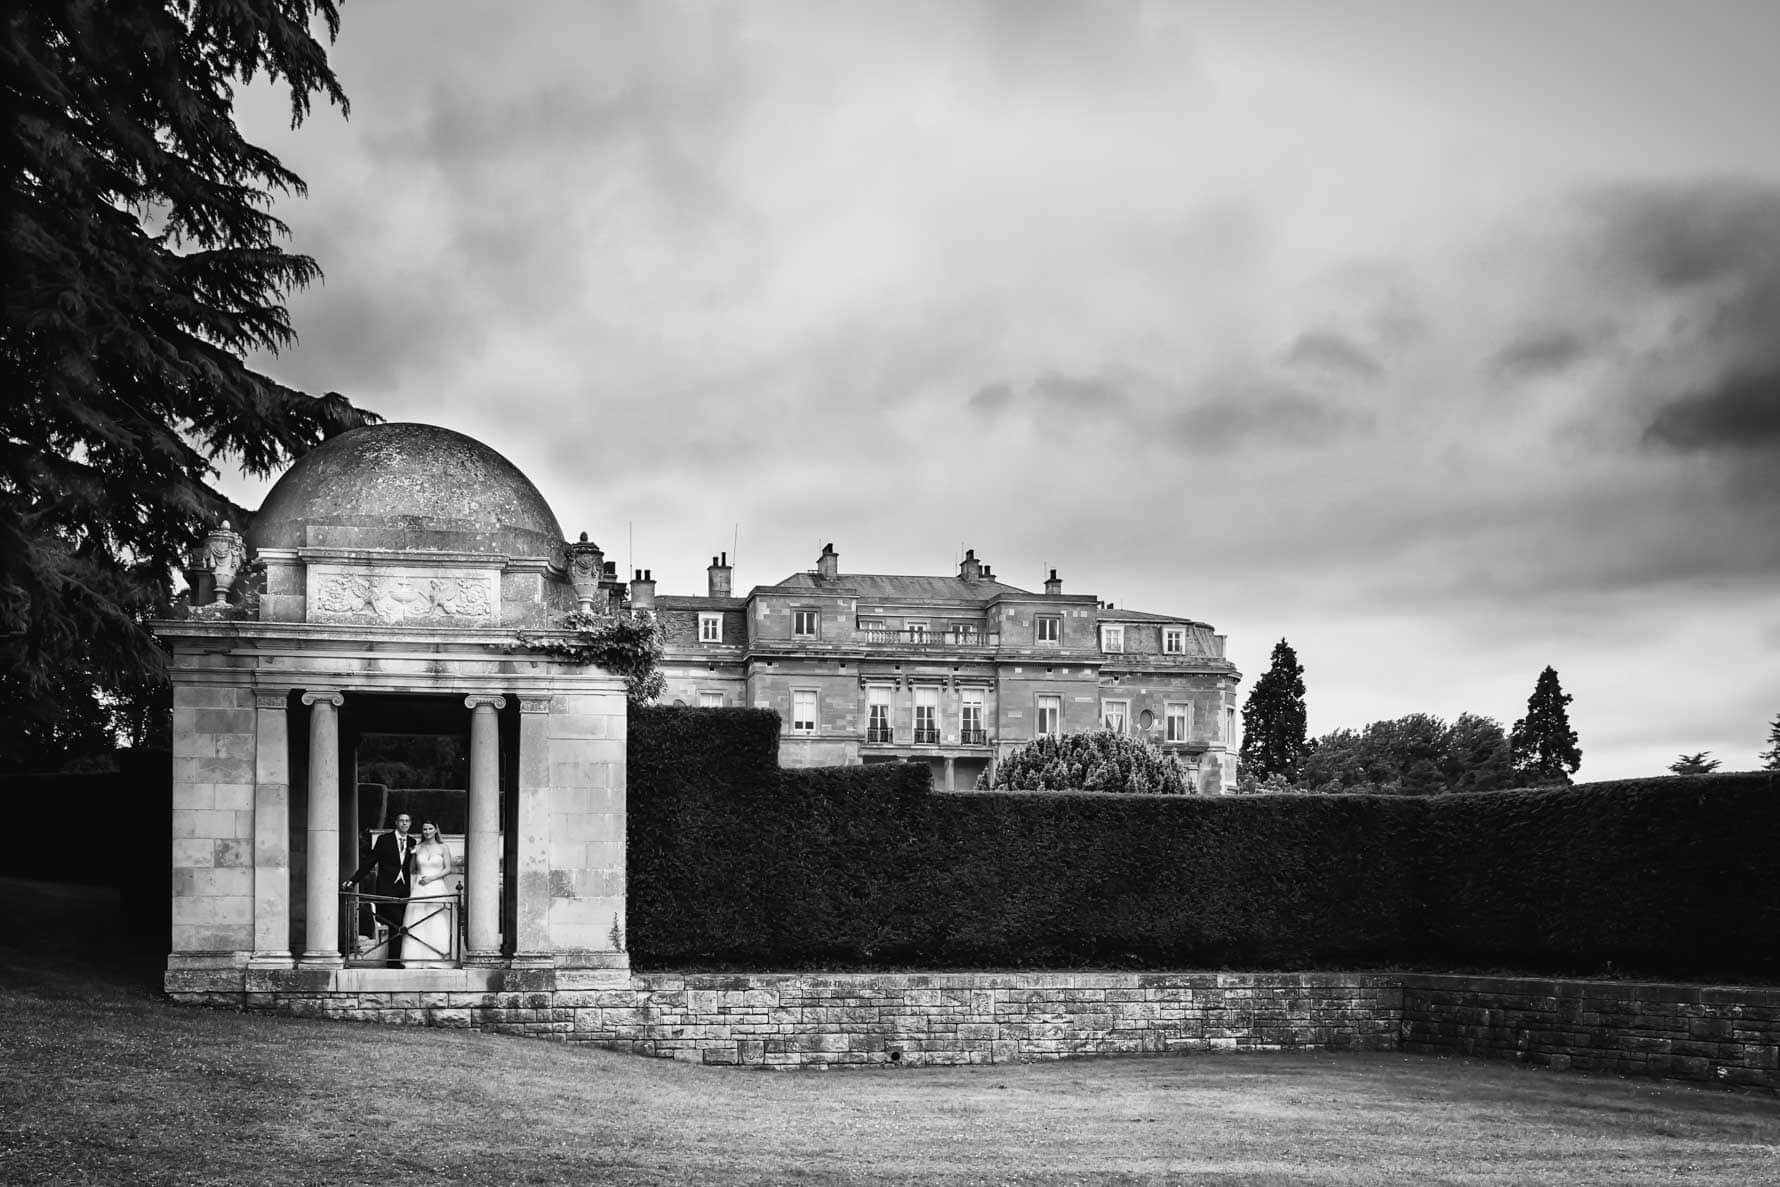 Bride and groom under stormy skies at Luton Hoo Hotel by Hertfordshire wedding photographer Graham Warrellow